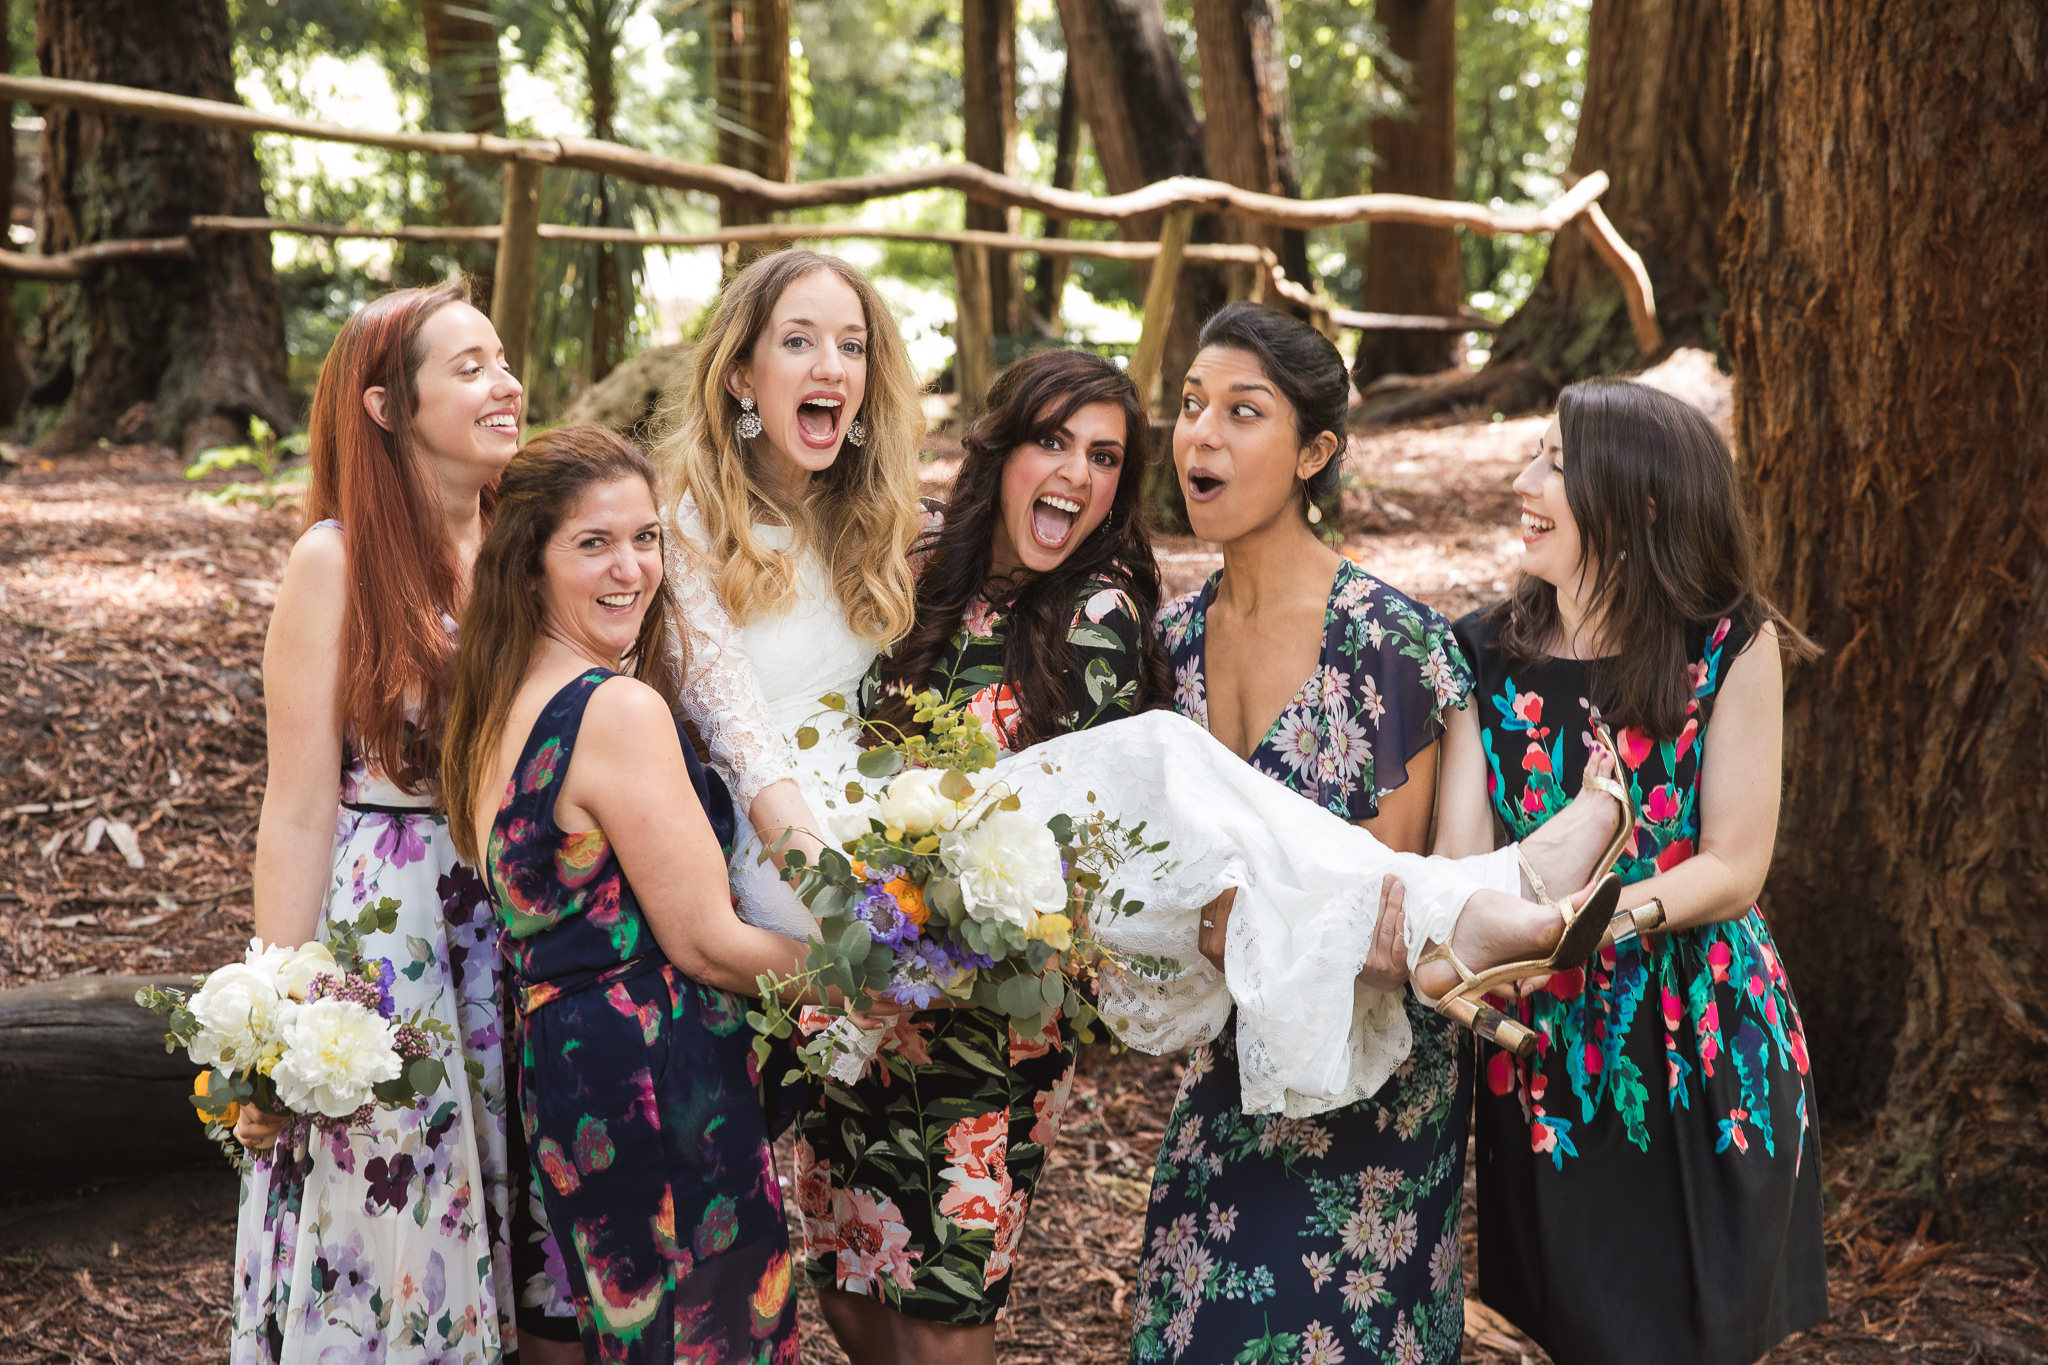 Katie, the bride, and her best friends show what it means to be best friends. We were very impressed at how coordinated they were to pull this off.